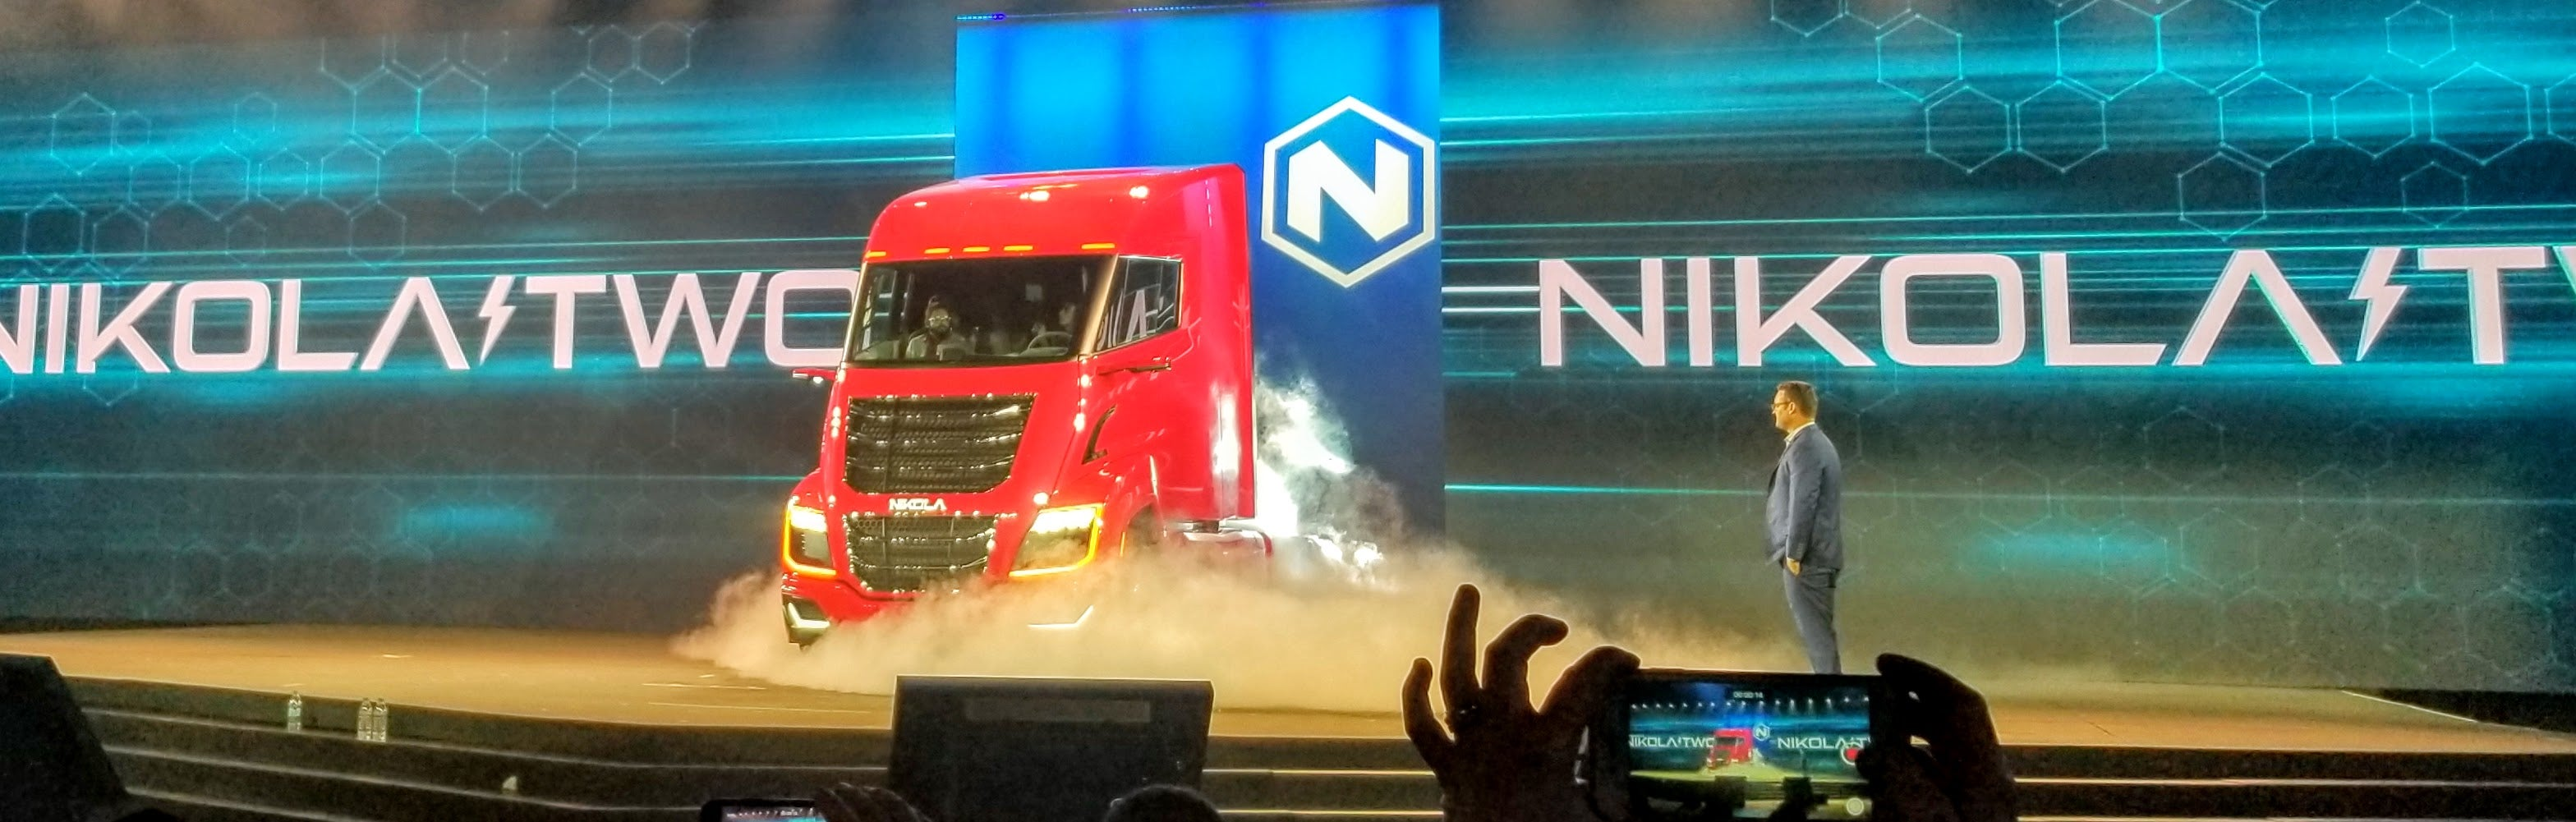 Nikola Pushes Deeper Into Battery Electric Vehicles With Next Generation Battery Tech